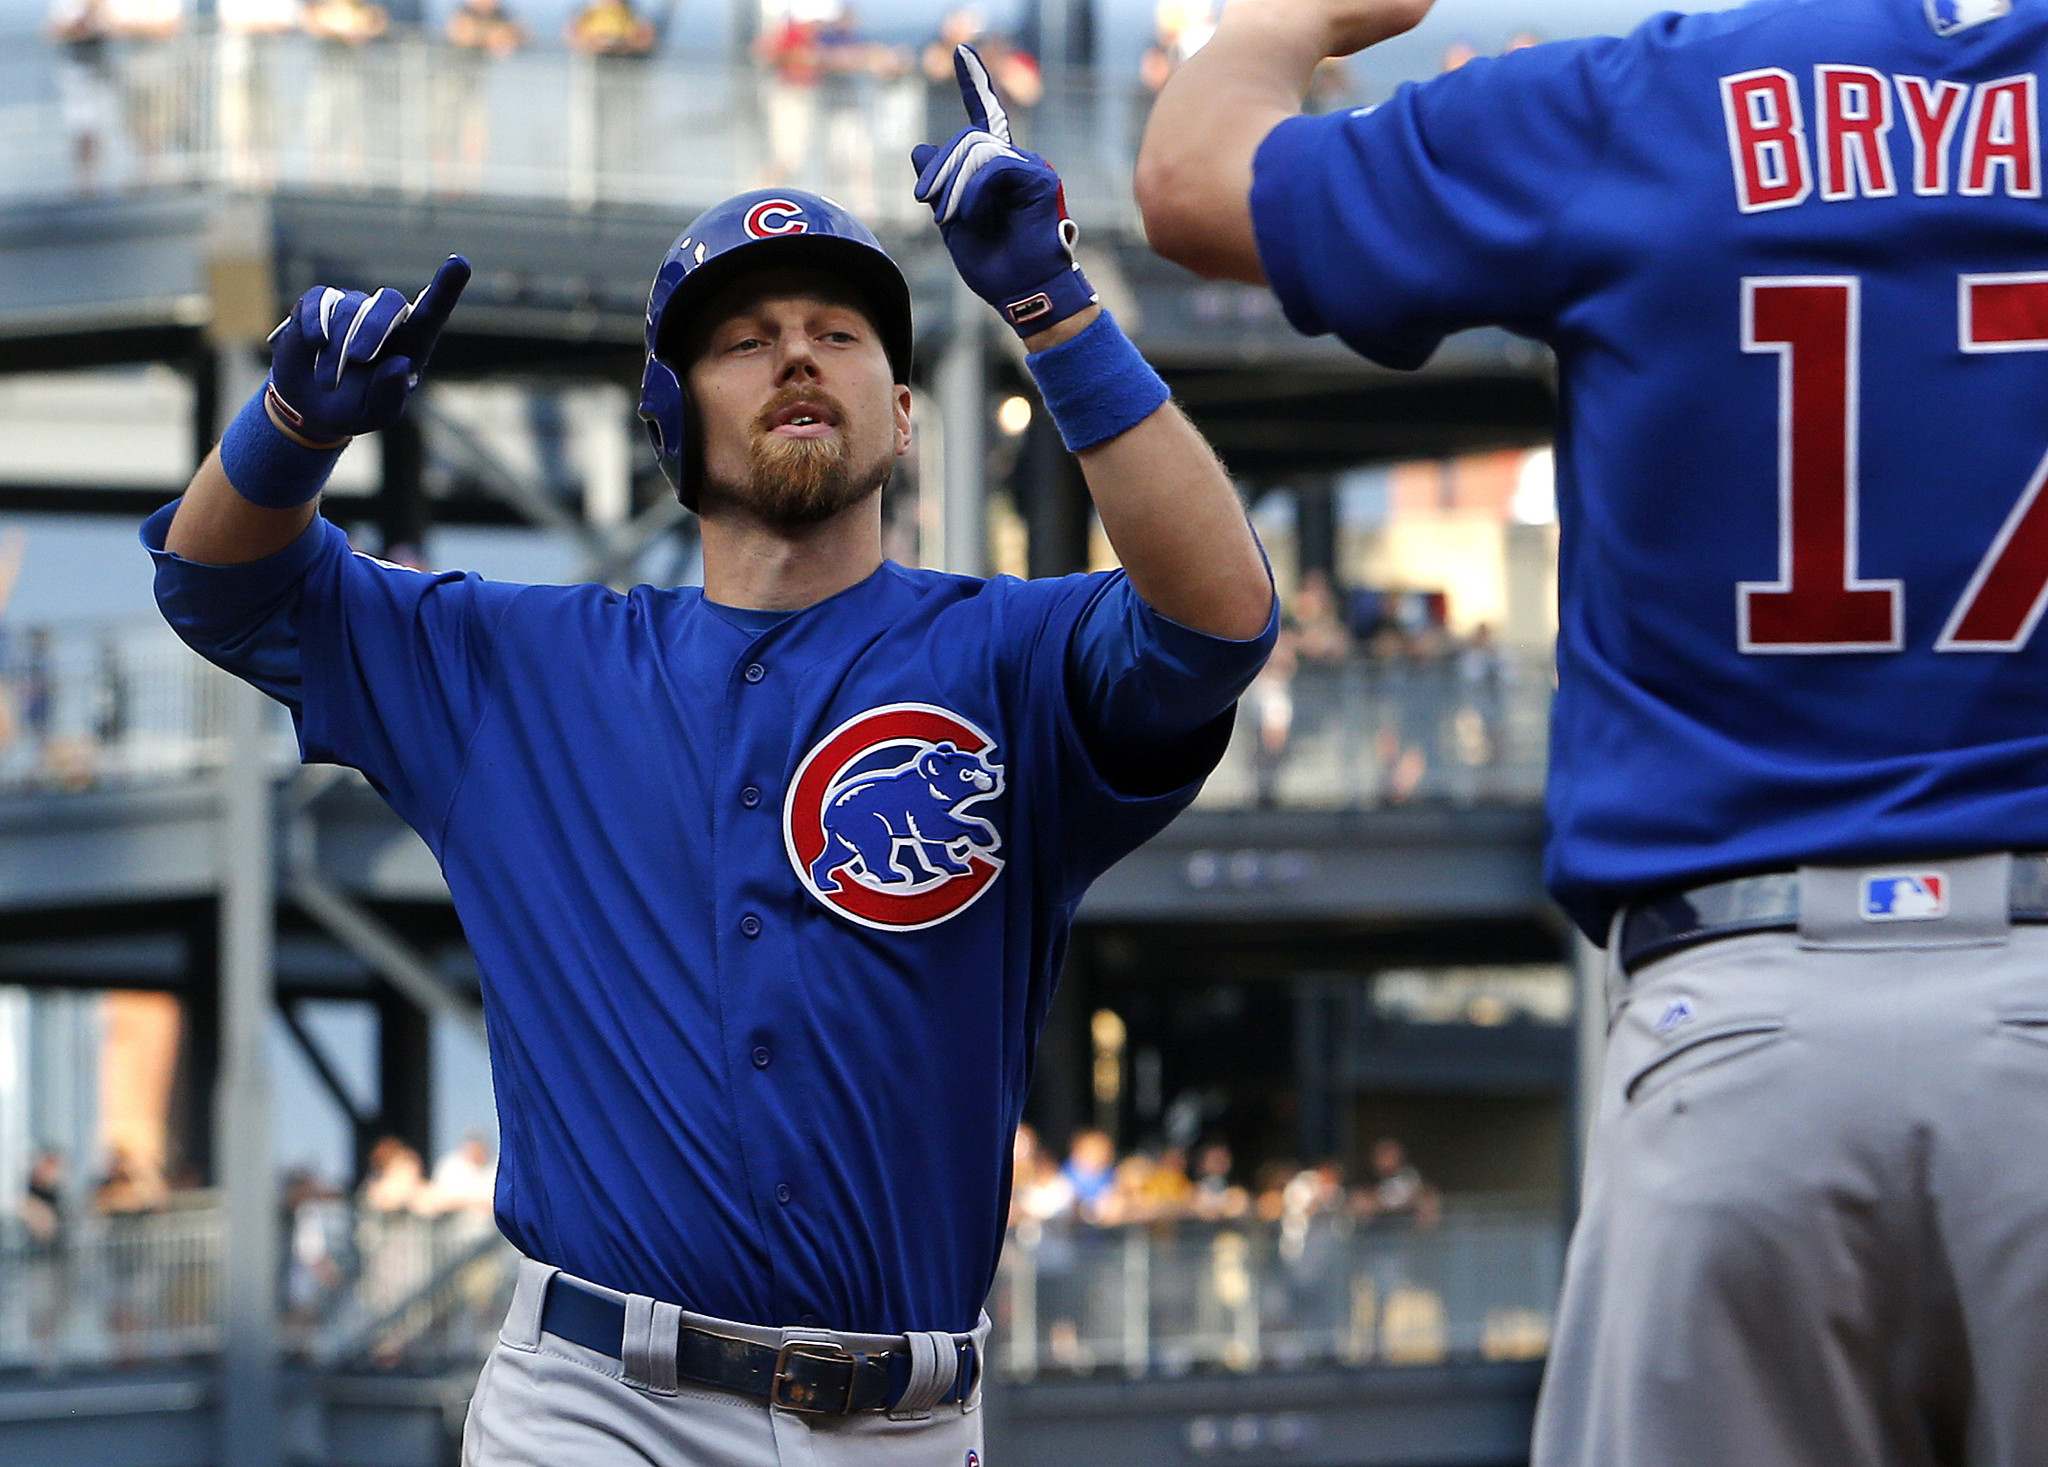 After Cubs play 24 games without a day off, Ben Zobrist seeks new rule